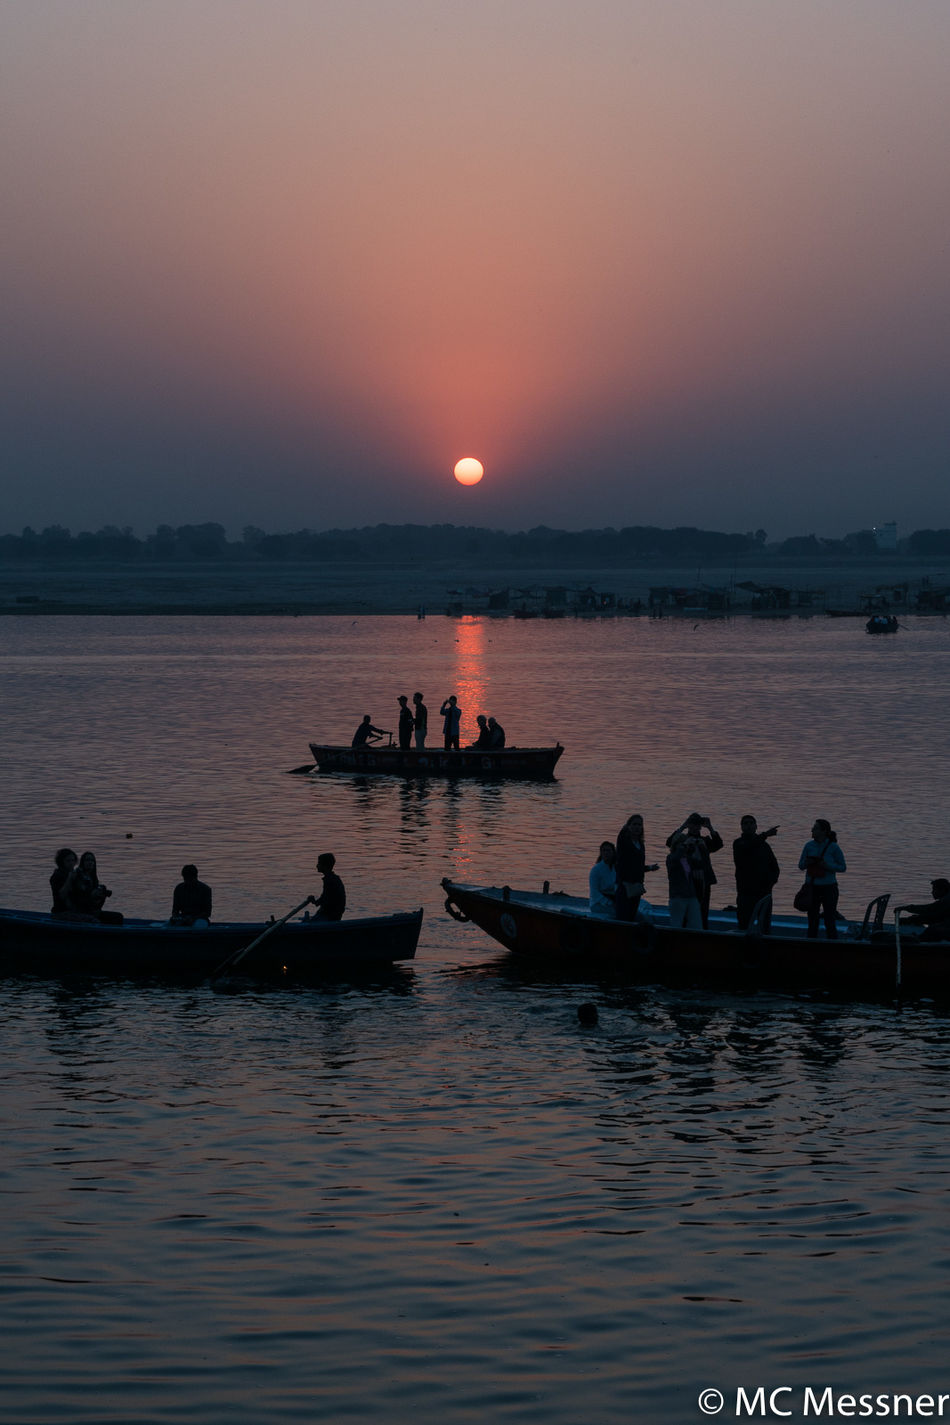 Everyday Life Ghats  Ghats Of Varanasi Ghats On The Ganges India Indiapictures Outdoors Scenics Street Photography Streetphotography Sunrise Travel Travel Destinations Travel Photography Varanasi Varanasi Ganges Varanasi India